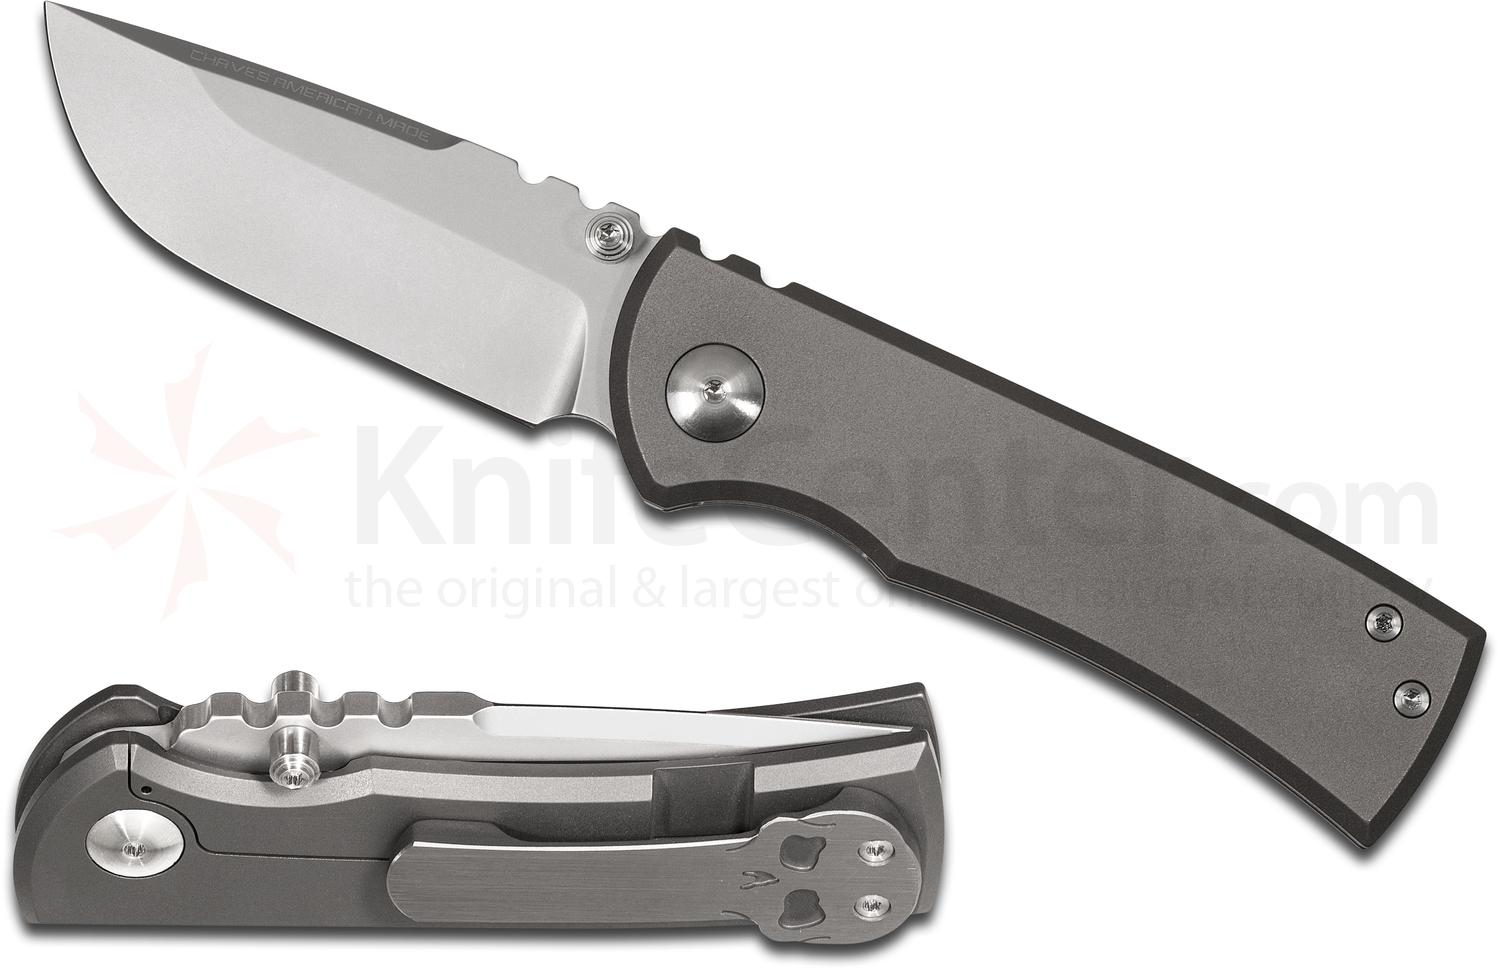 Chaves American Made Redencion 228 Folding Knife 3.3 inch S35VN Bead Blasted Drop Point Blade, Milled Titanium Handles